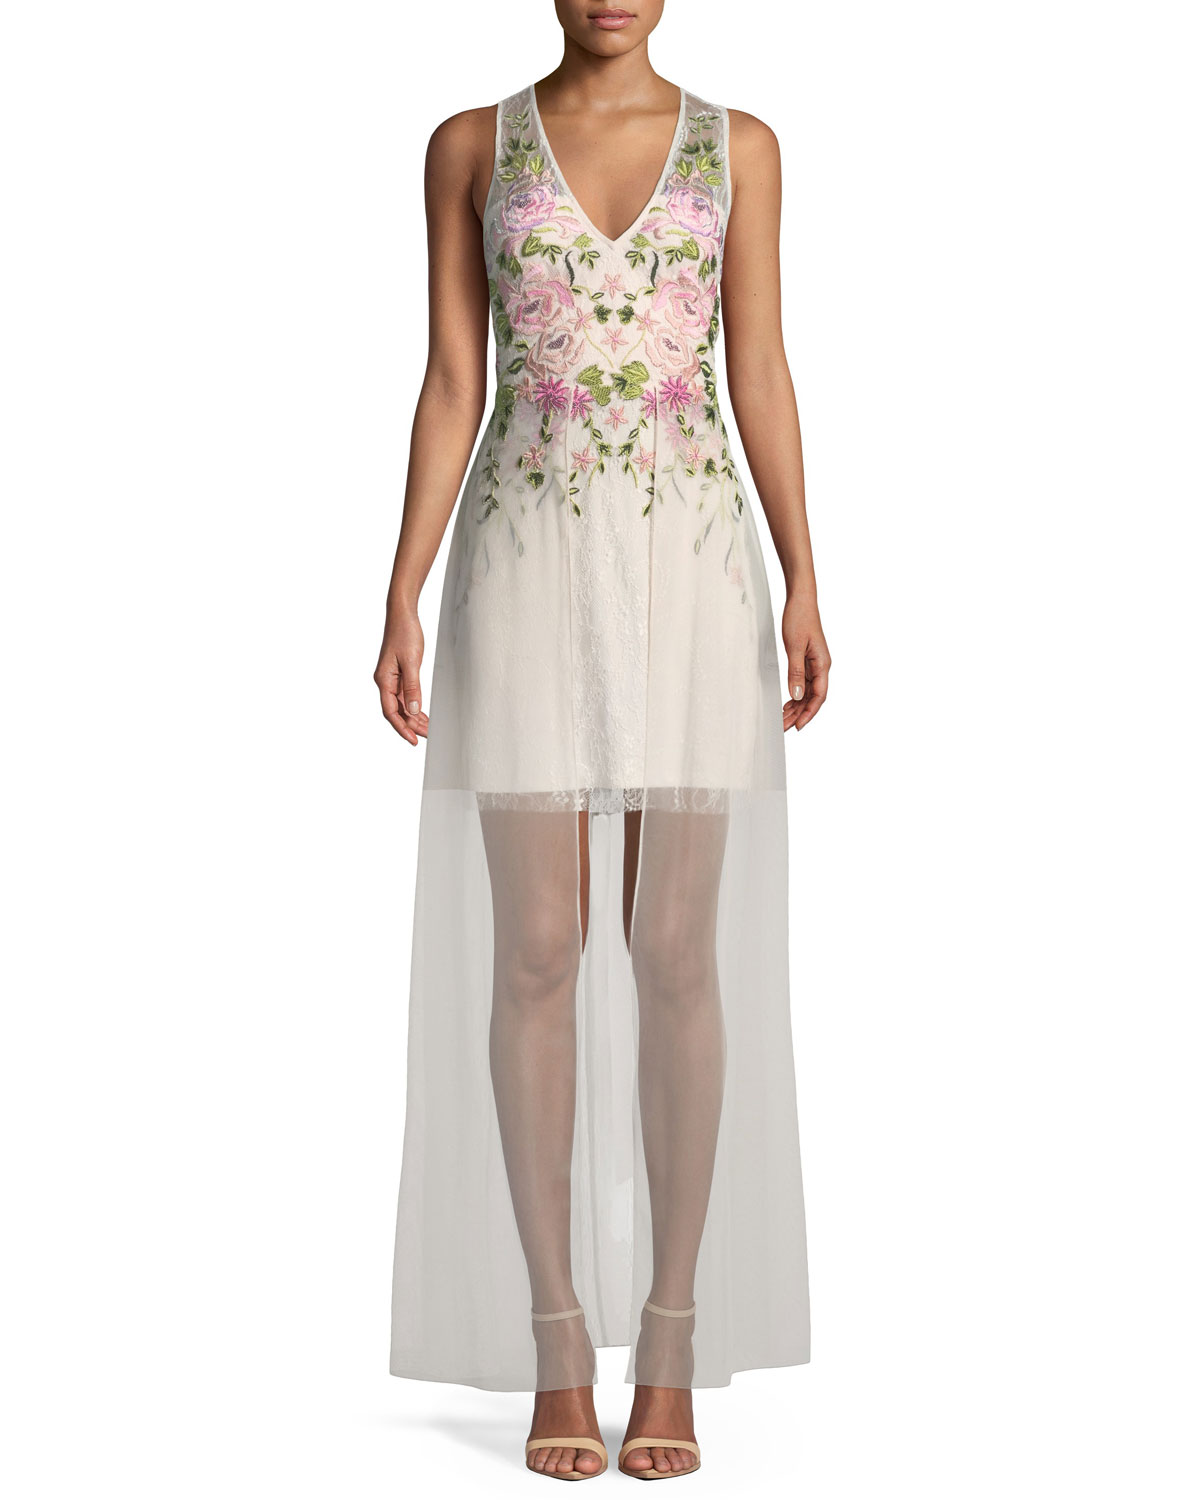 Aidan Mattox Floral Embroidered Gown w/ Overlay Skirt | Neiman Marcus